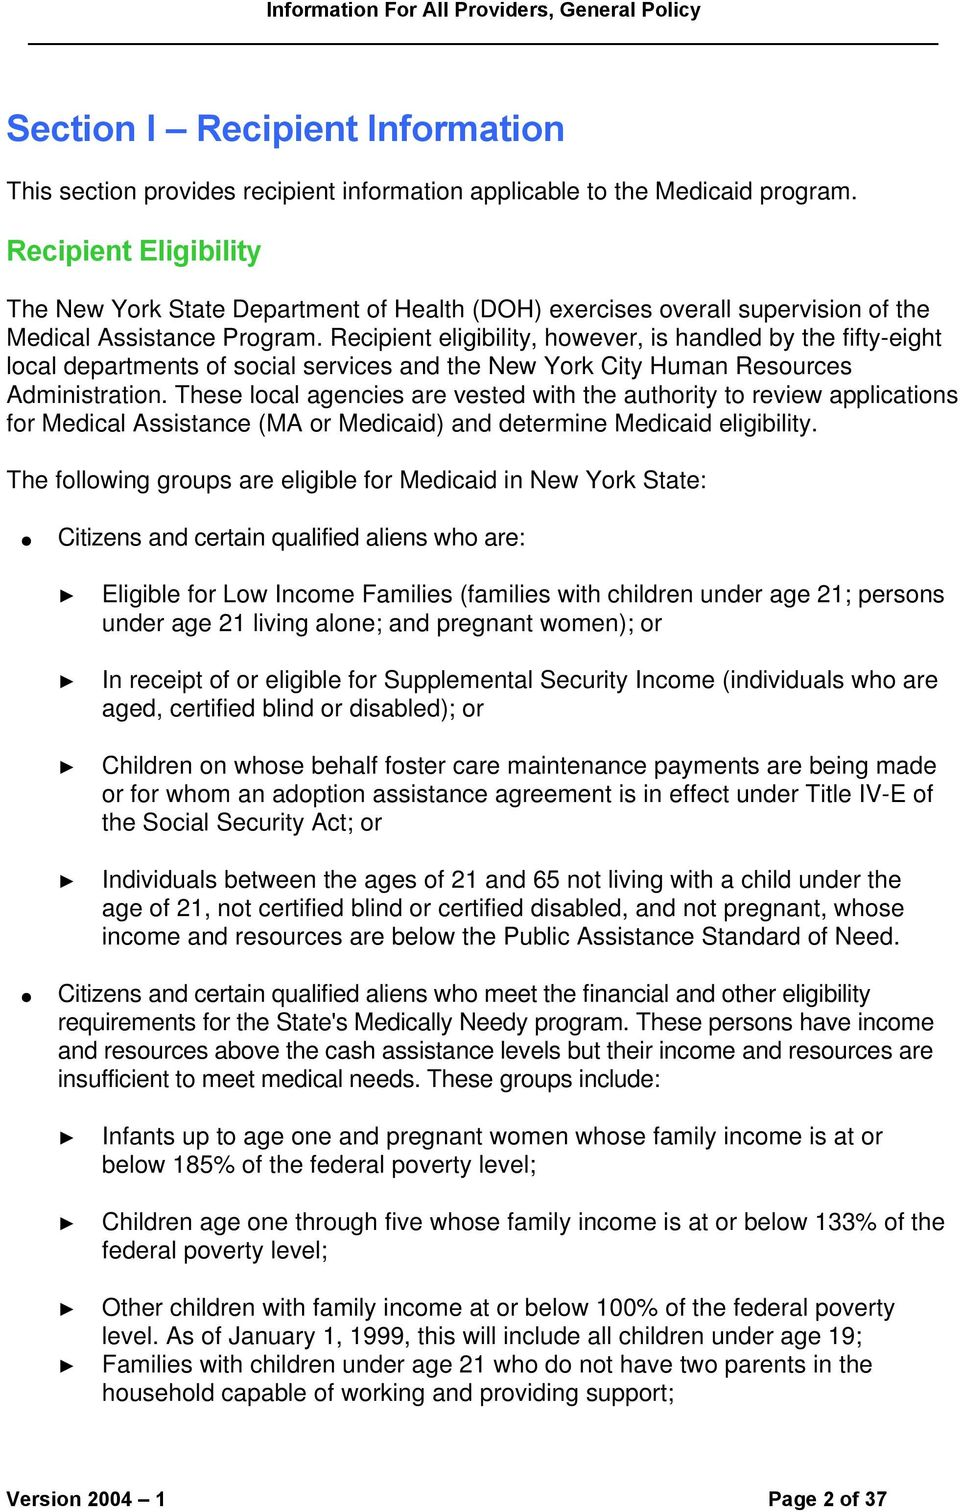 Recipient eligibility, however, is handled by the fifty-eight local departments of social services and the New York City Human Resources Administration.